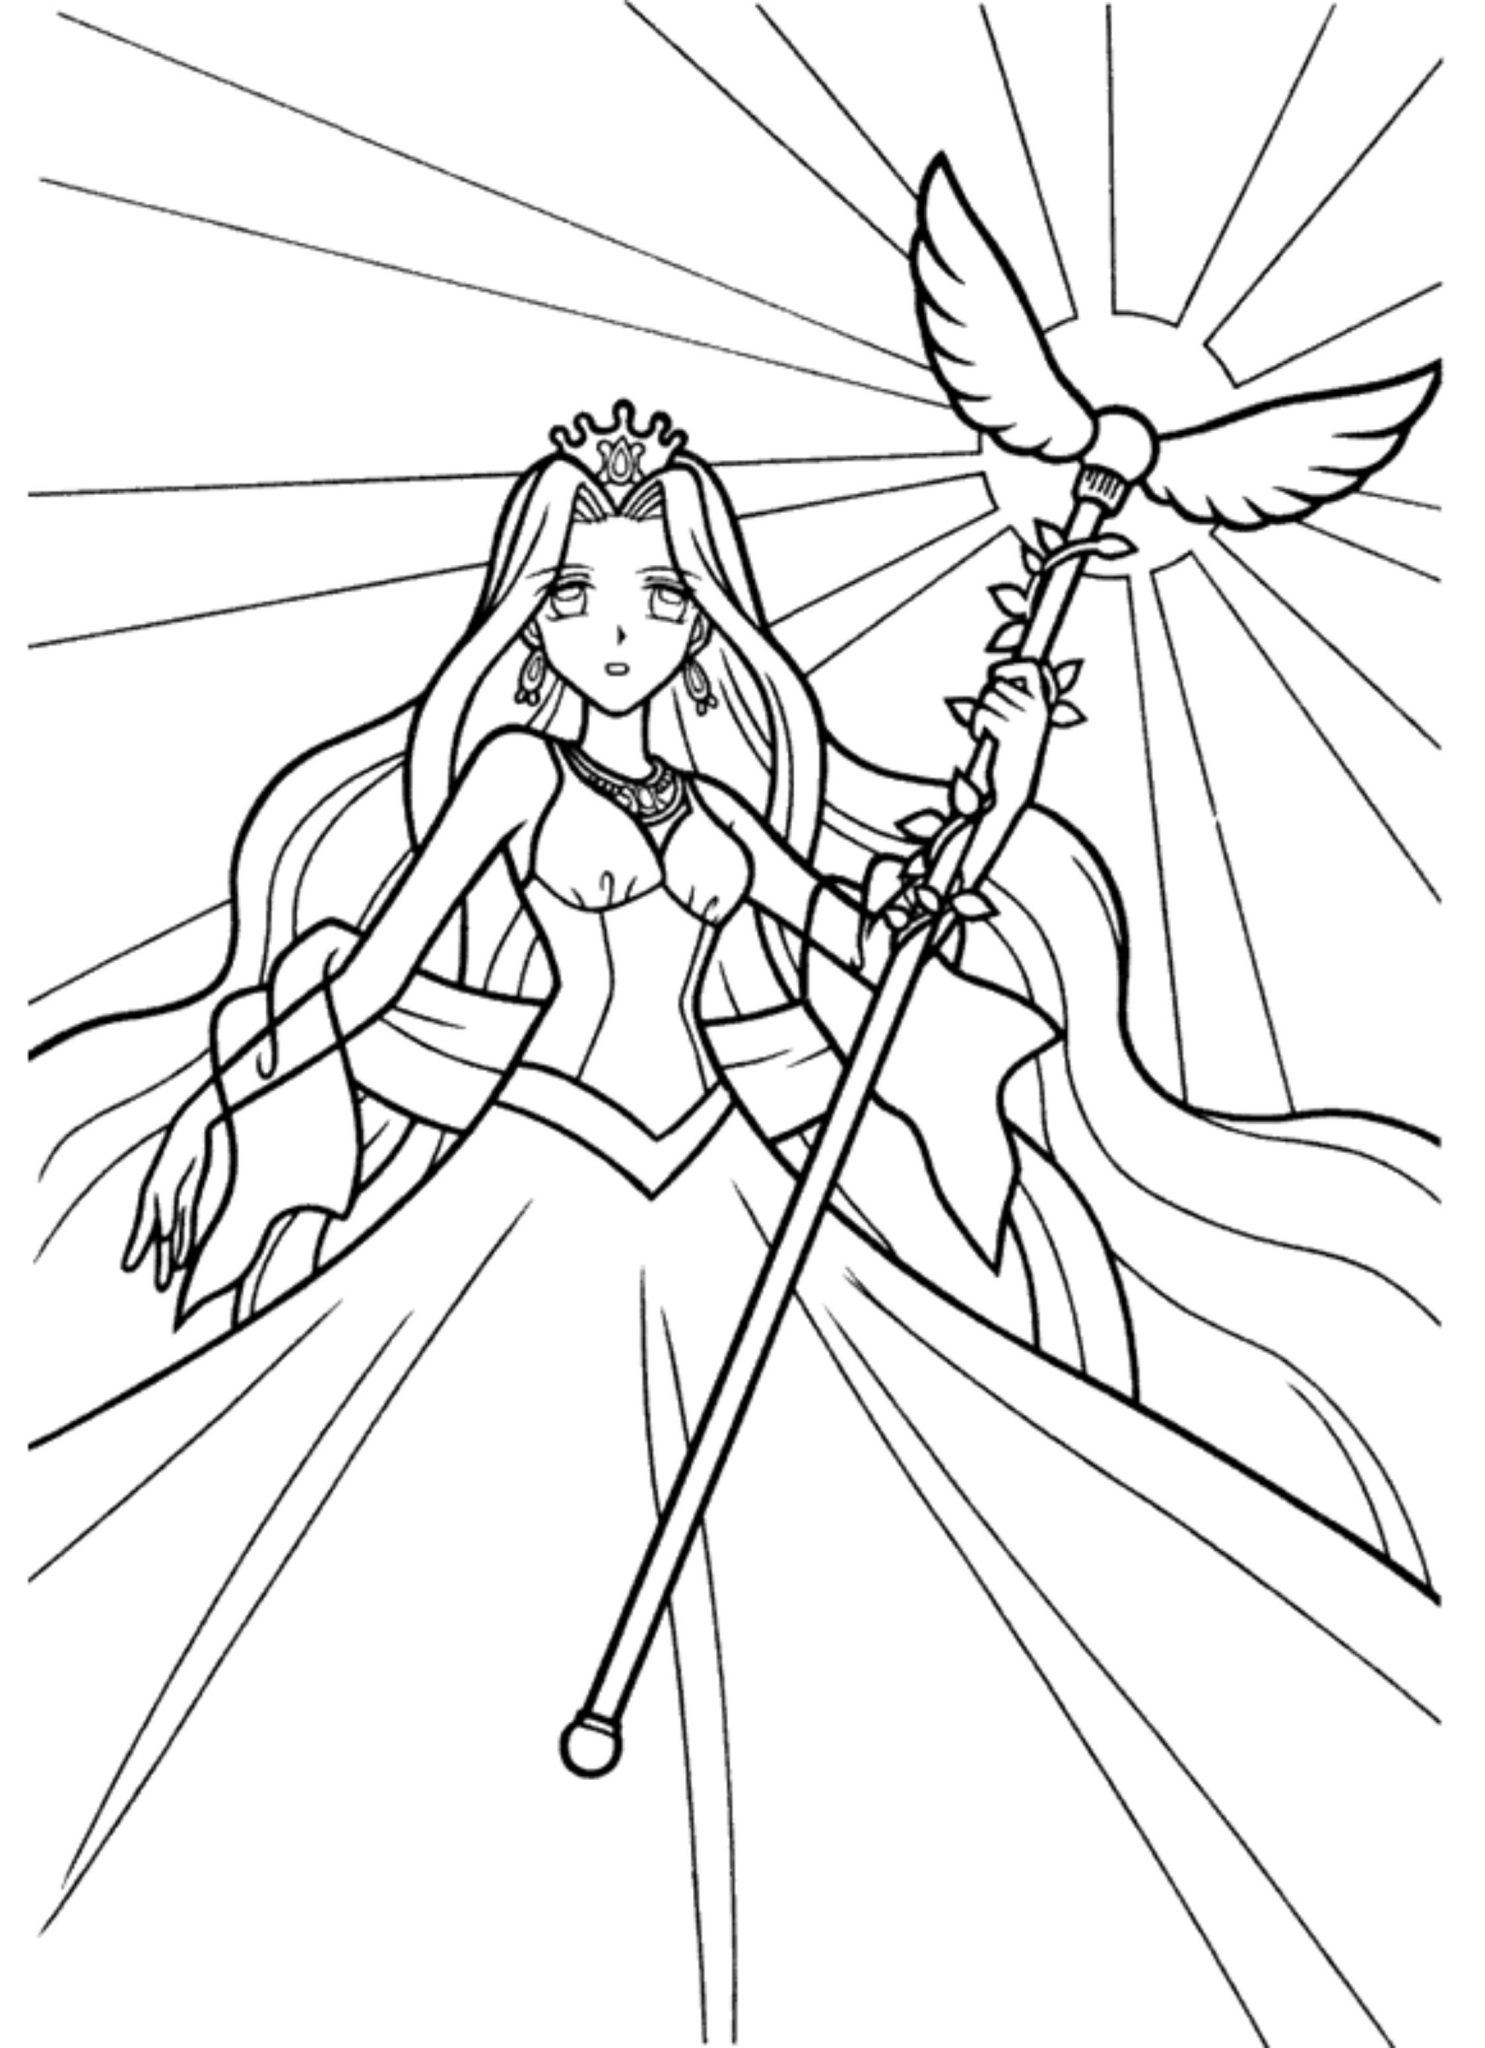 Coloring Games Free for Girls in 2020 | Barbie coloring pages ... | 2048x1485